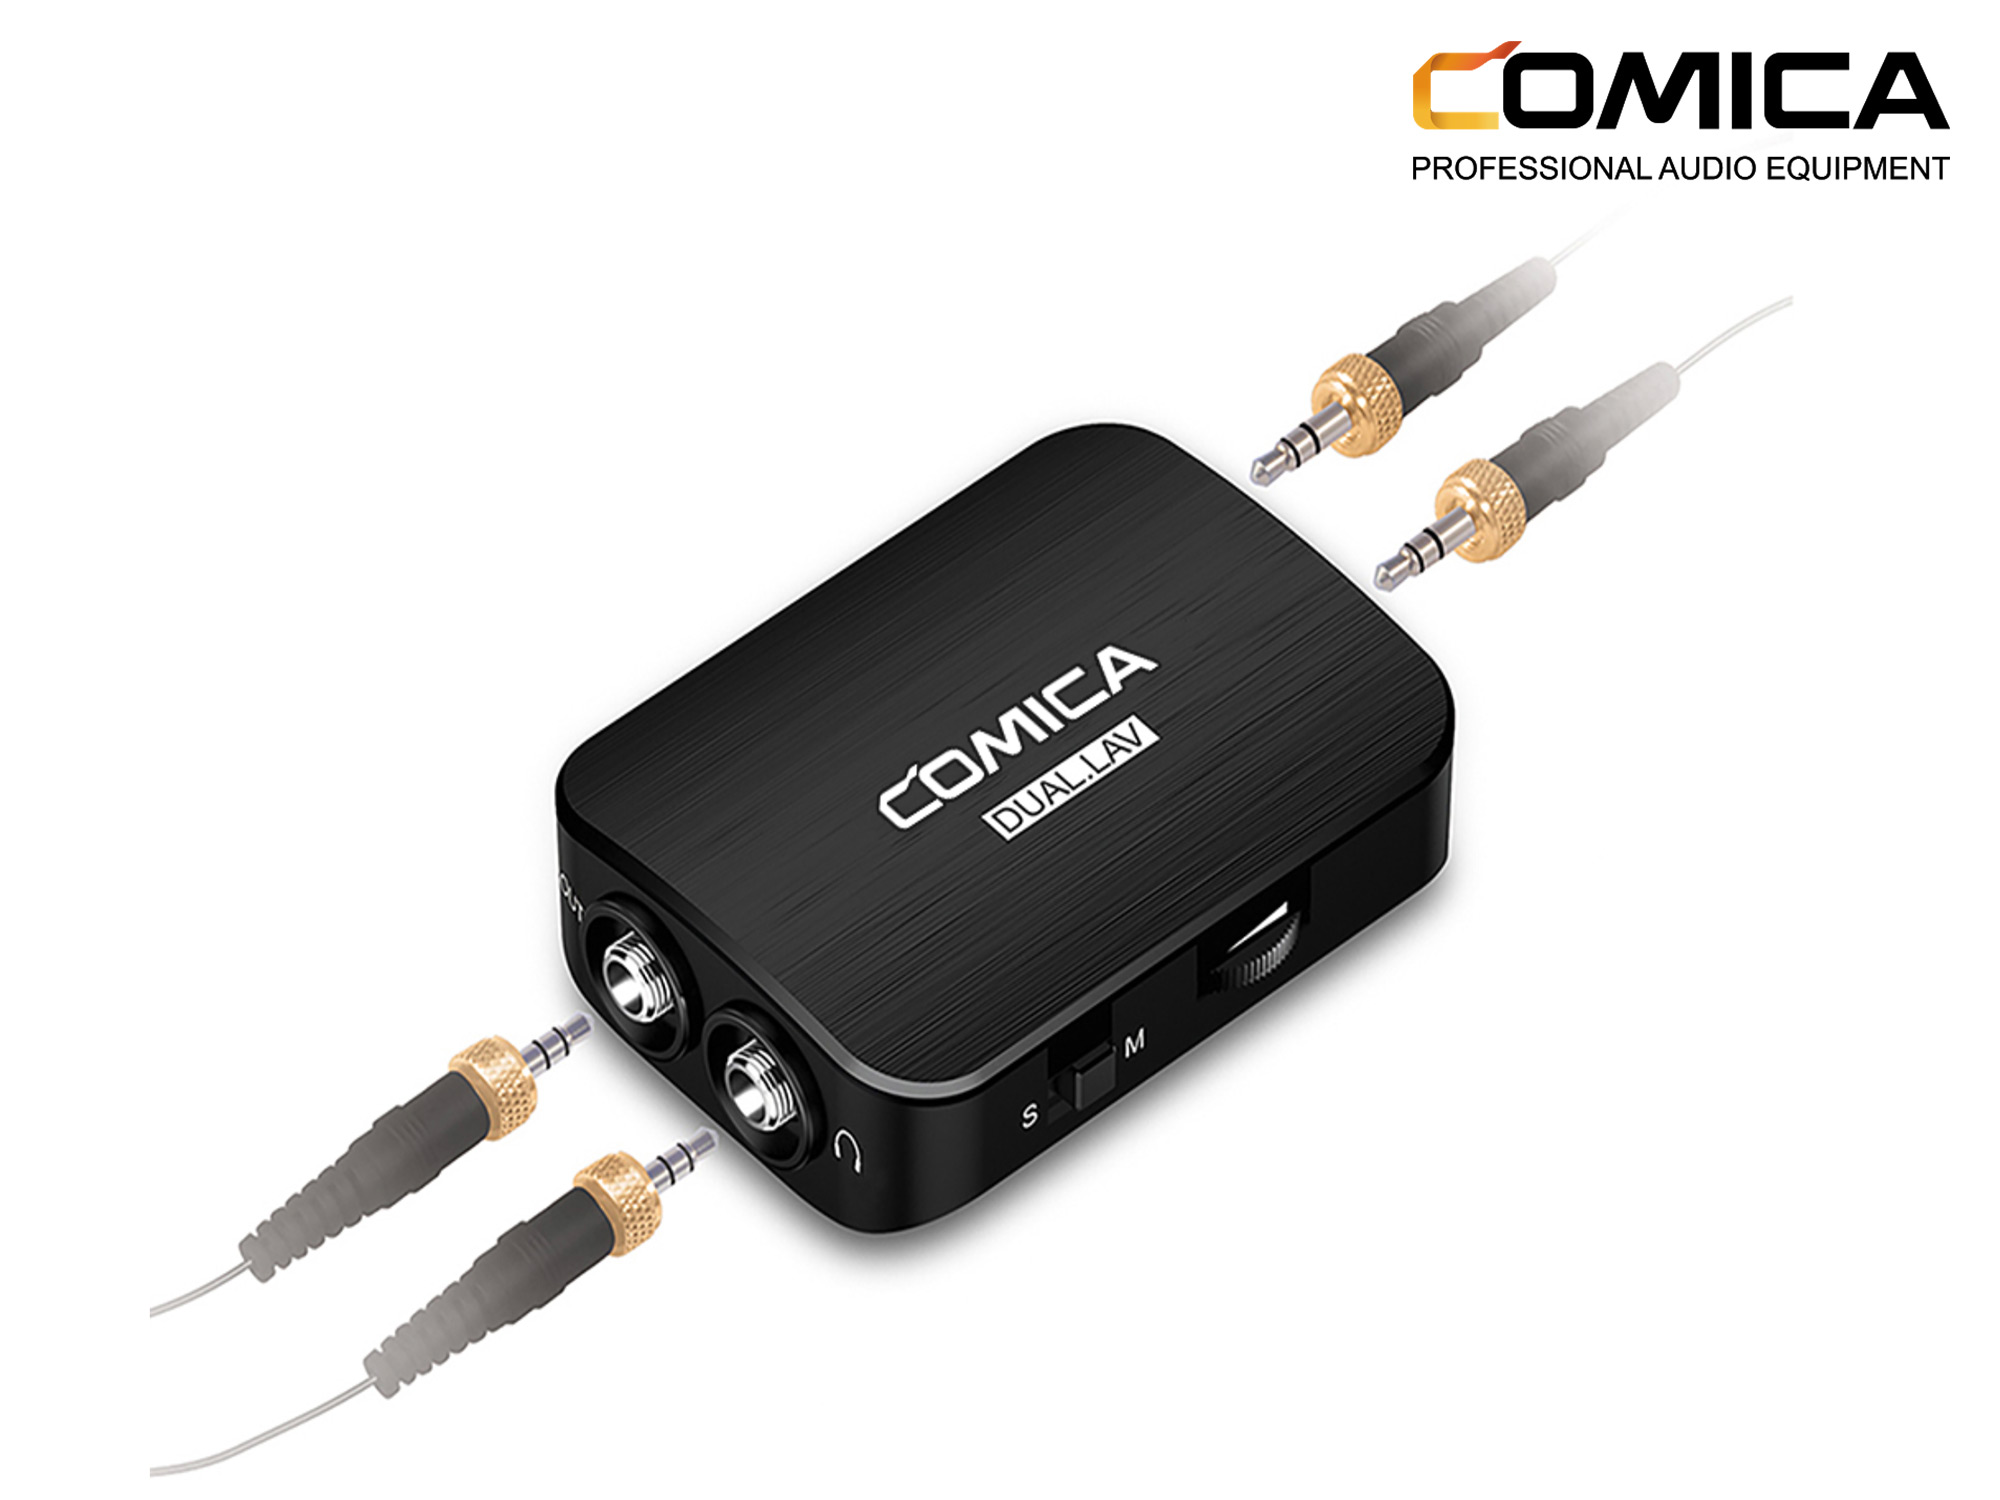 Comica Audio Omnidirectional Dual Lavalier Microphone Kit for DSLR and Smartphones